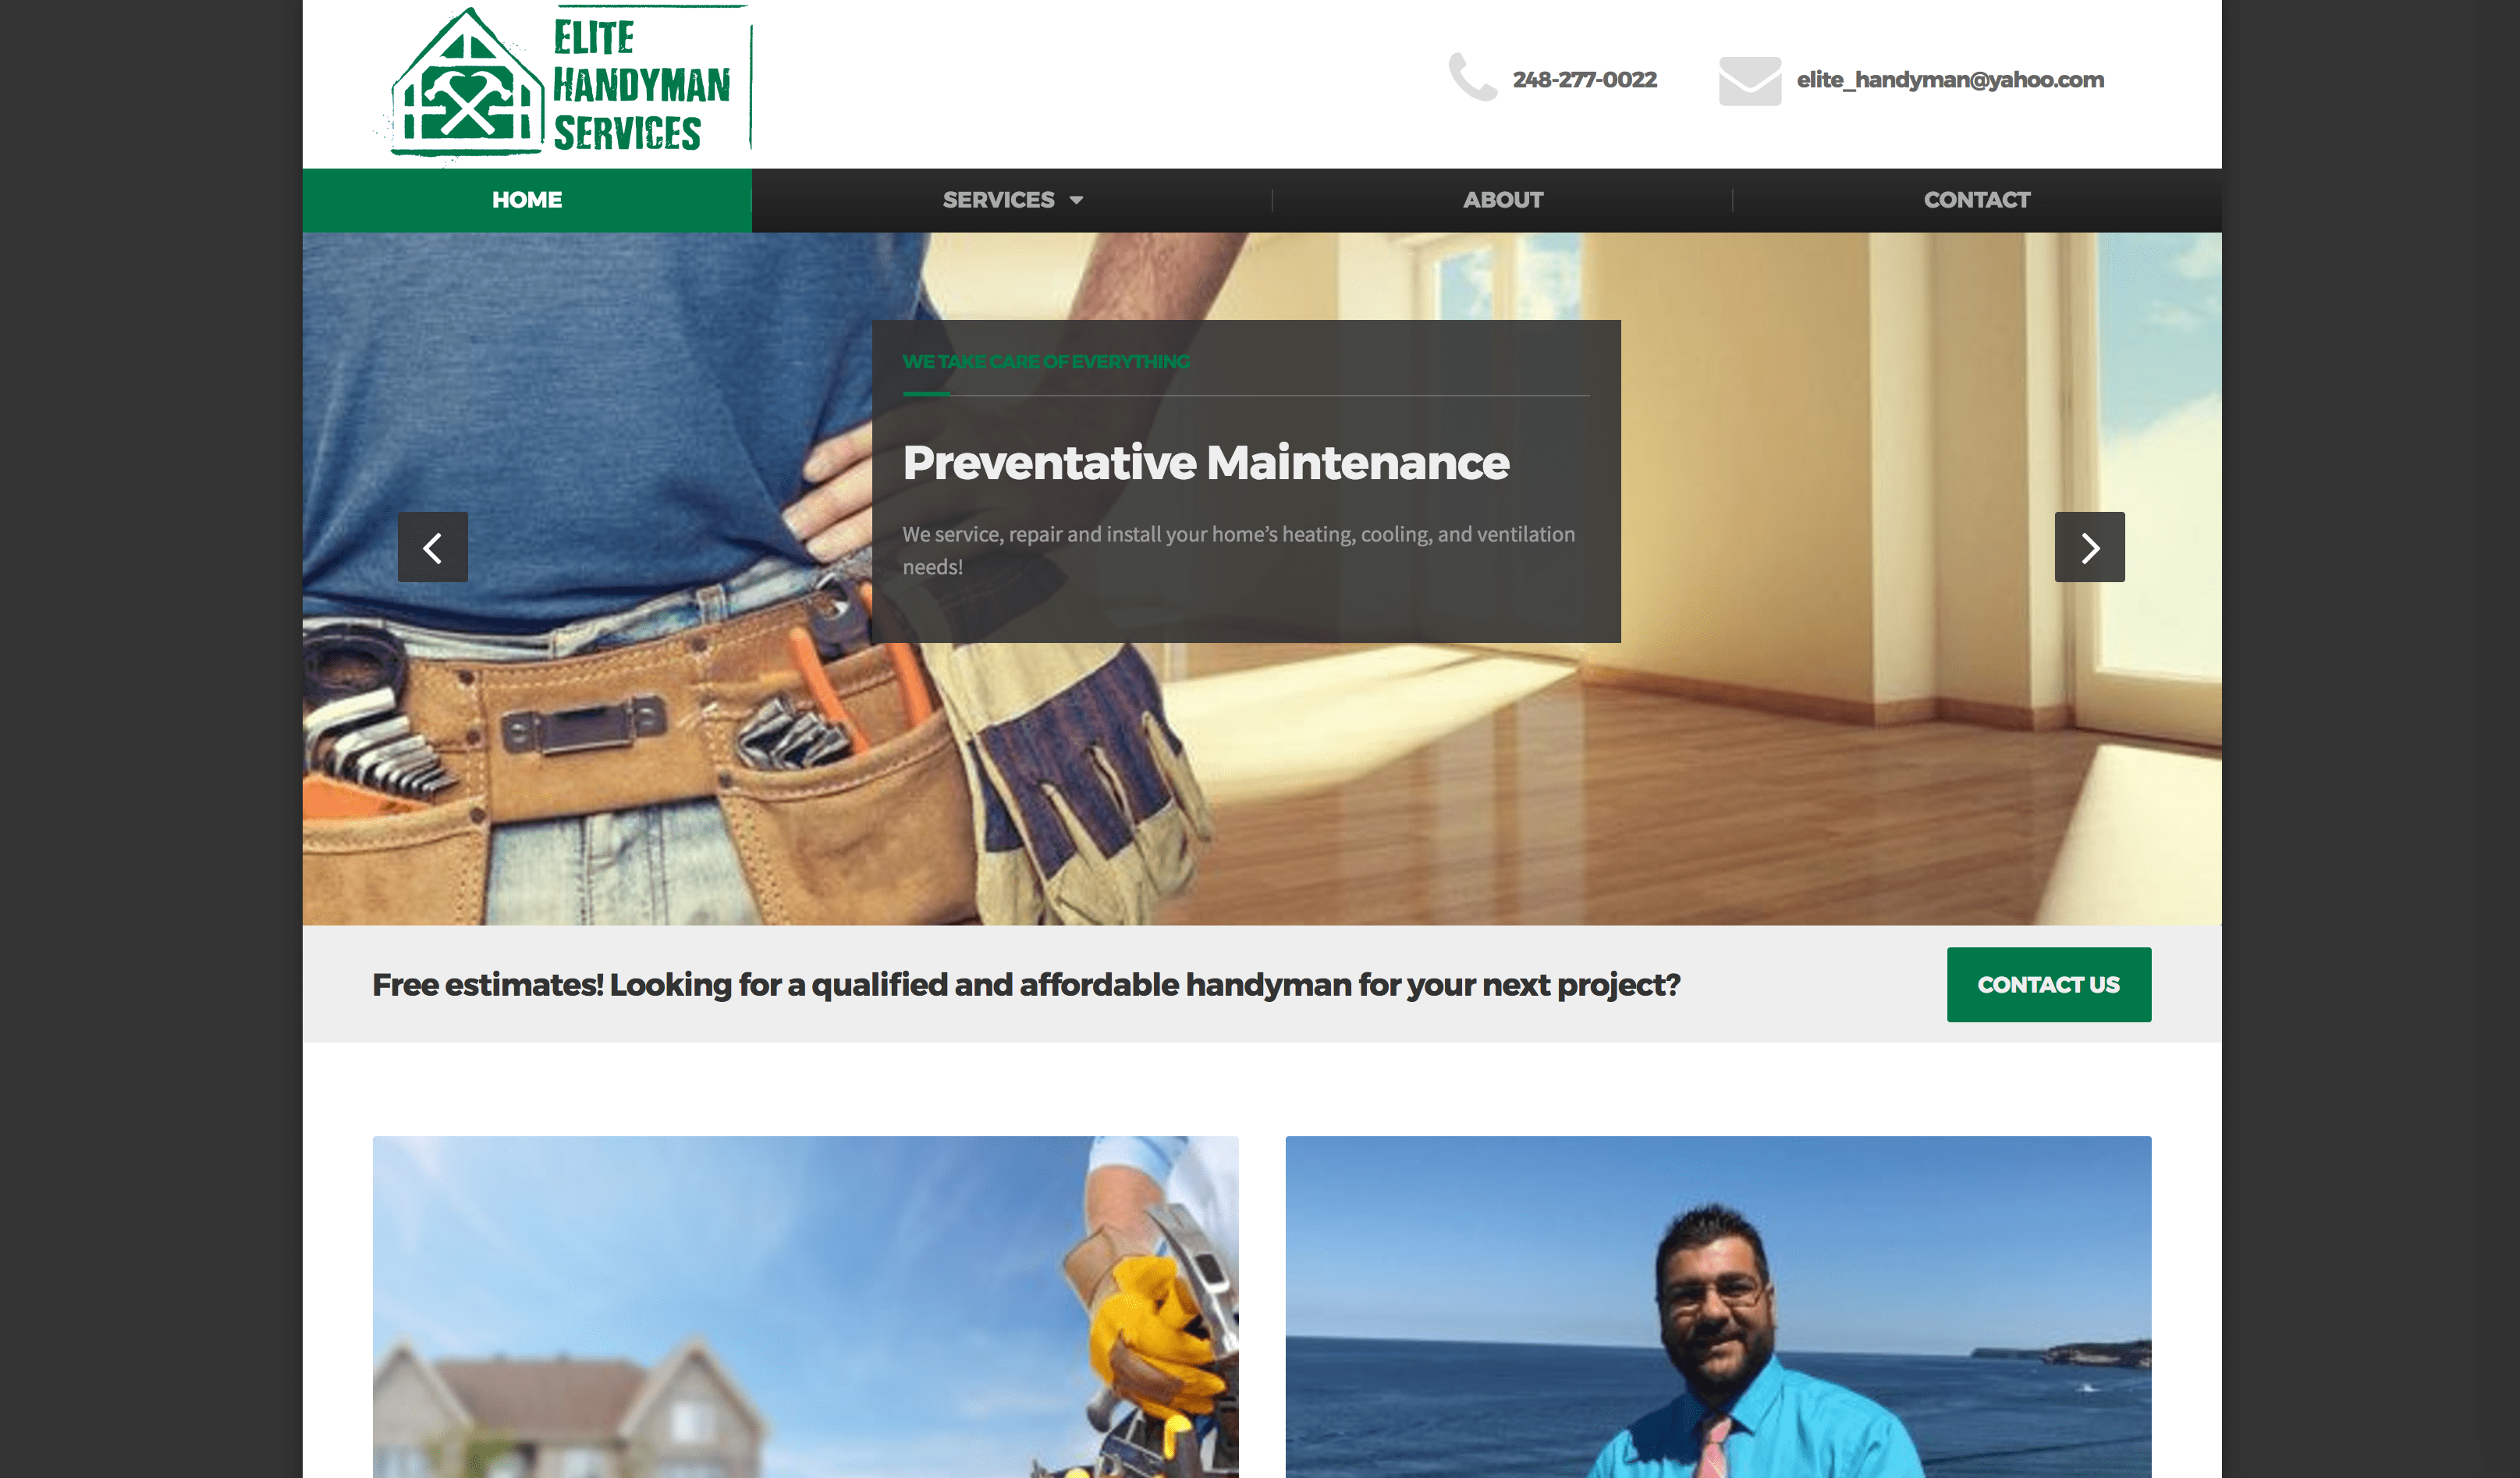 Elite Handyman Services was founded by Adam, a licensed and insured handyman with over 17 years of experience.